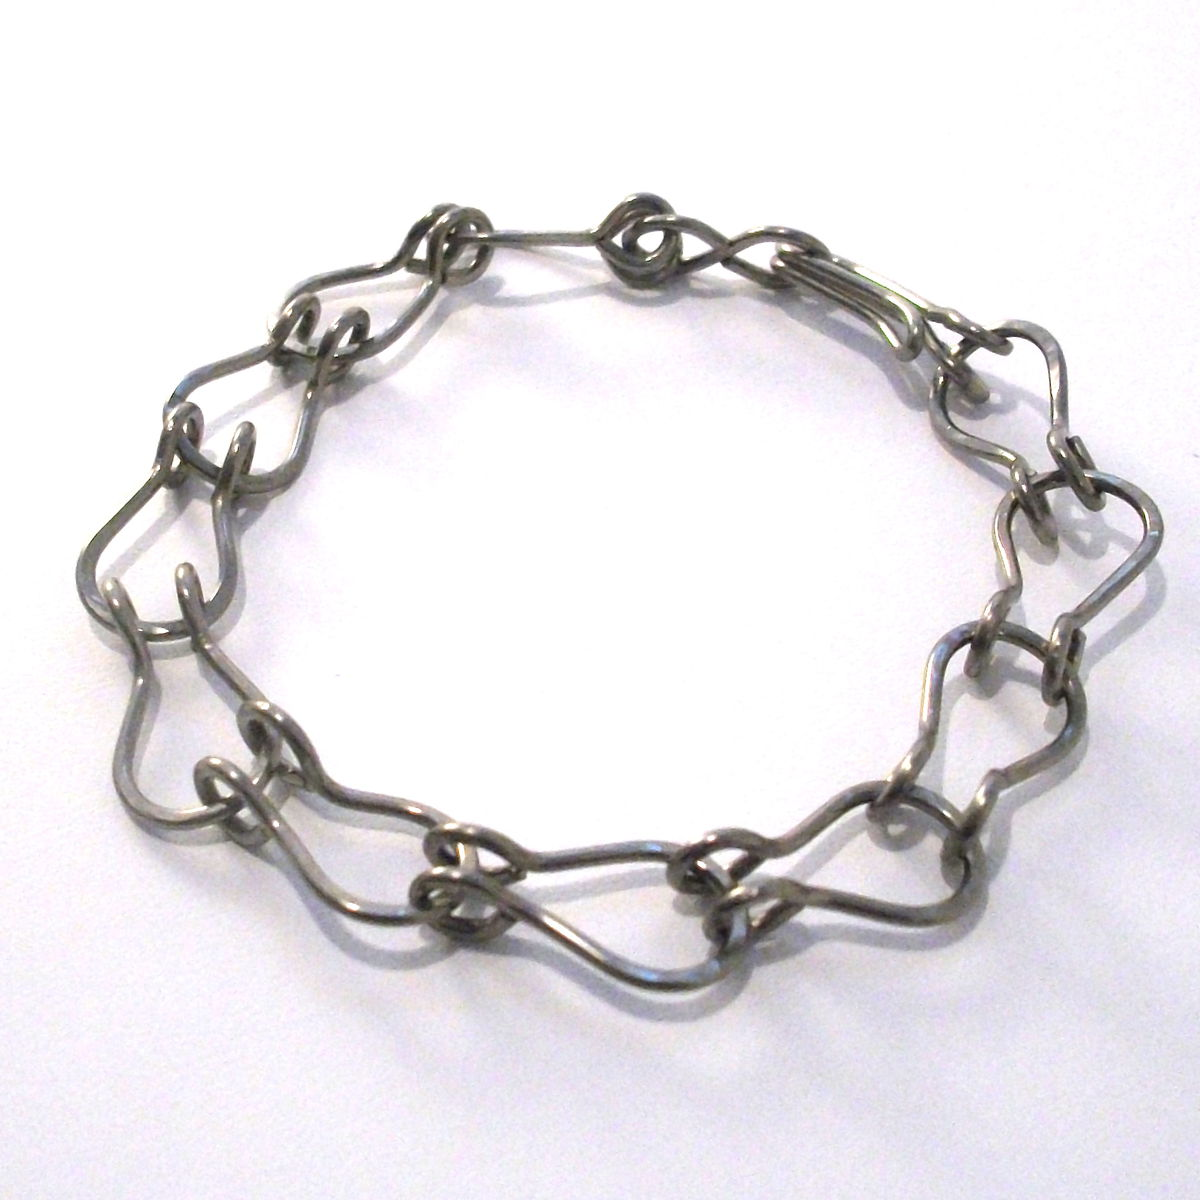 Niobium Horseshoe Claw Bracelet Handmade - product images  of